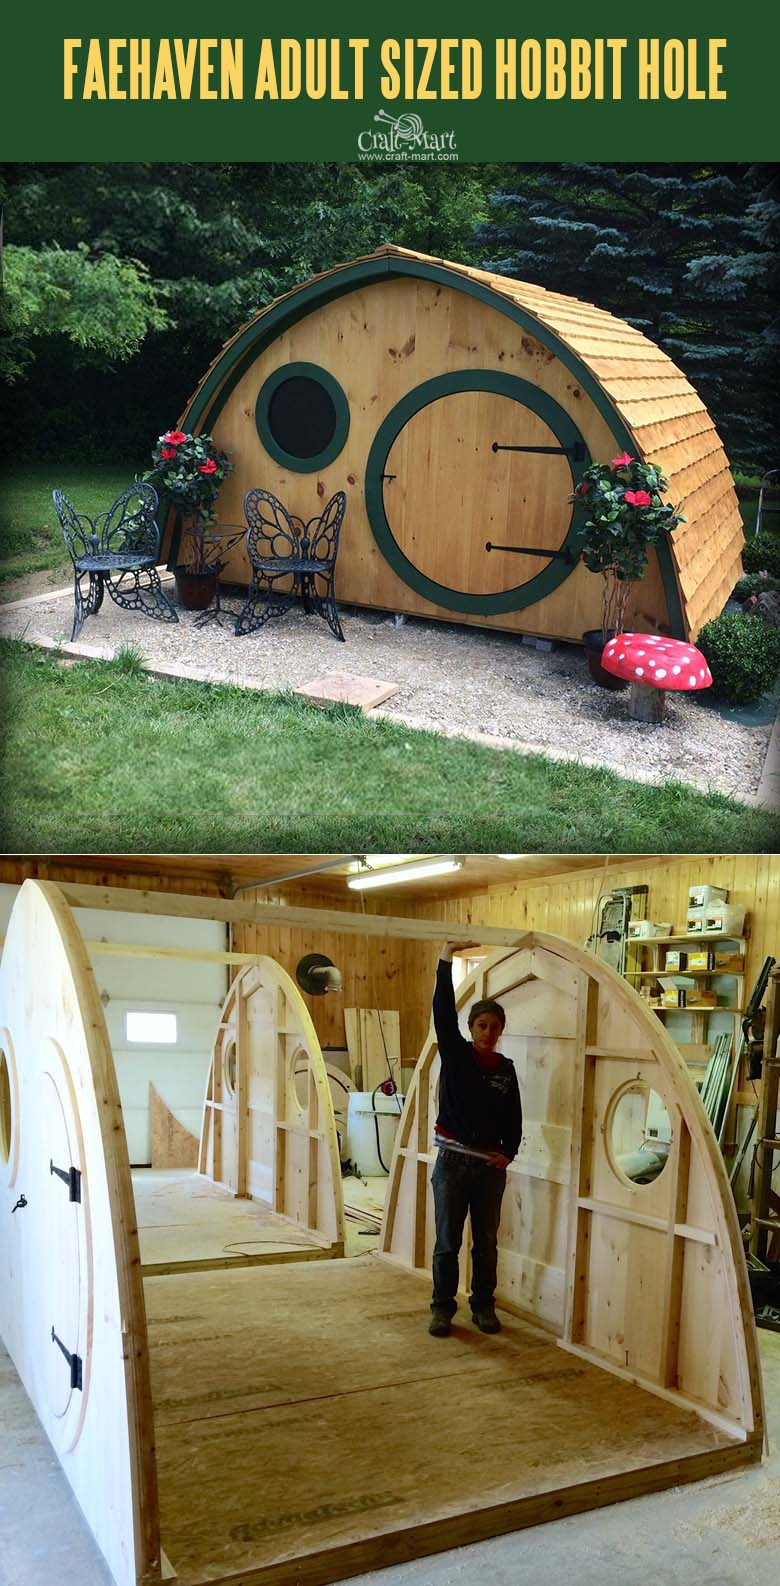 Faehaven Adult Sized Multi-Use Hobbit Hole House.